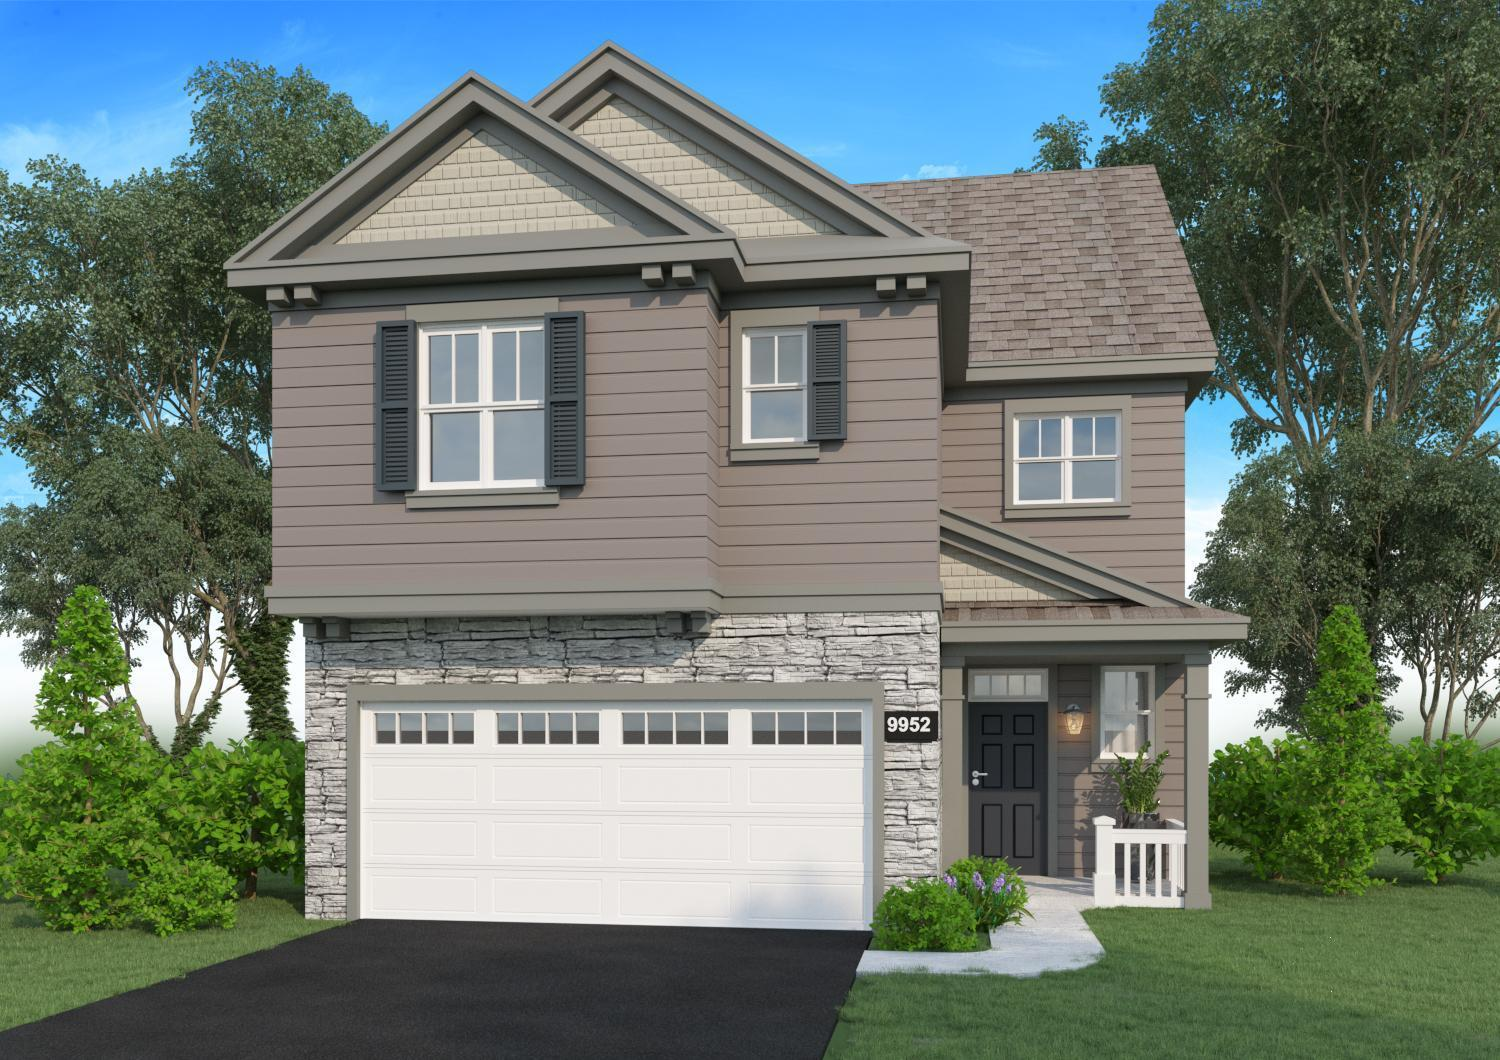 9914 Zilla Street NW Property Photo - Coon Rapids, MN real estate listing